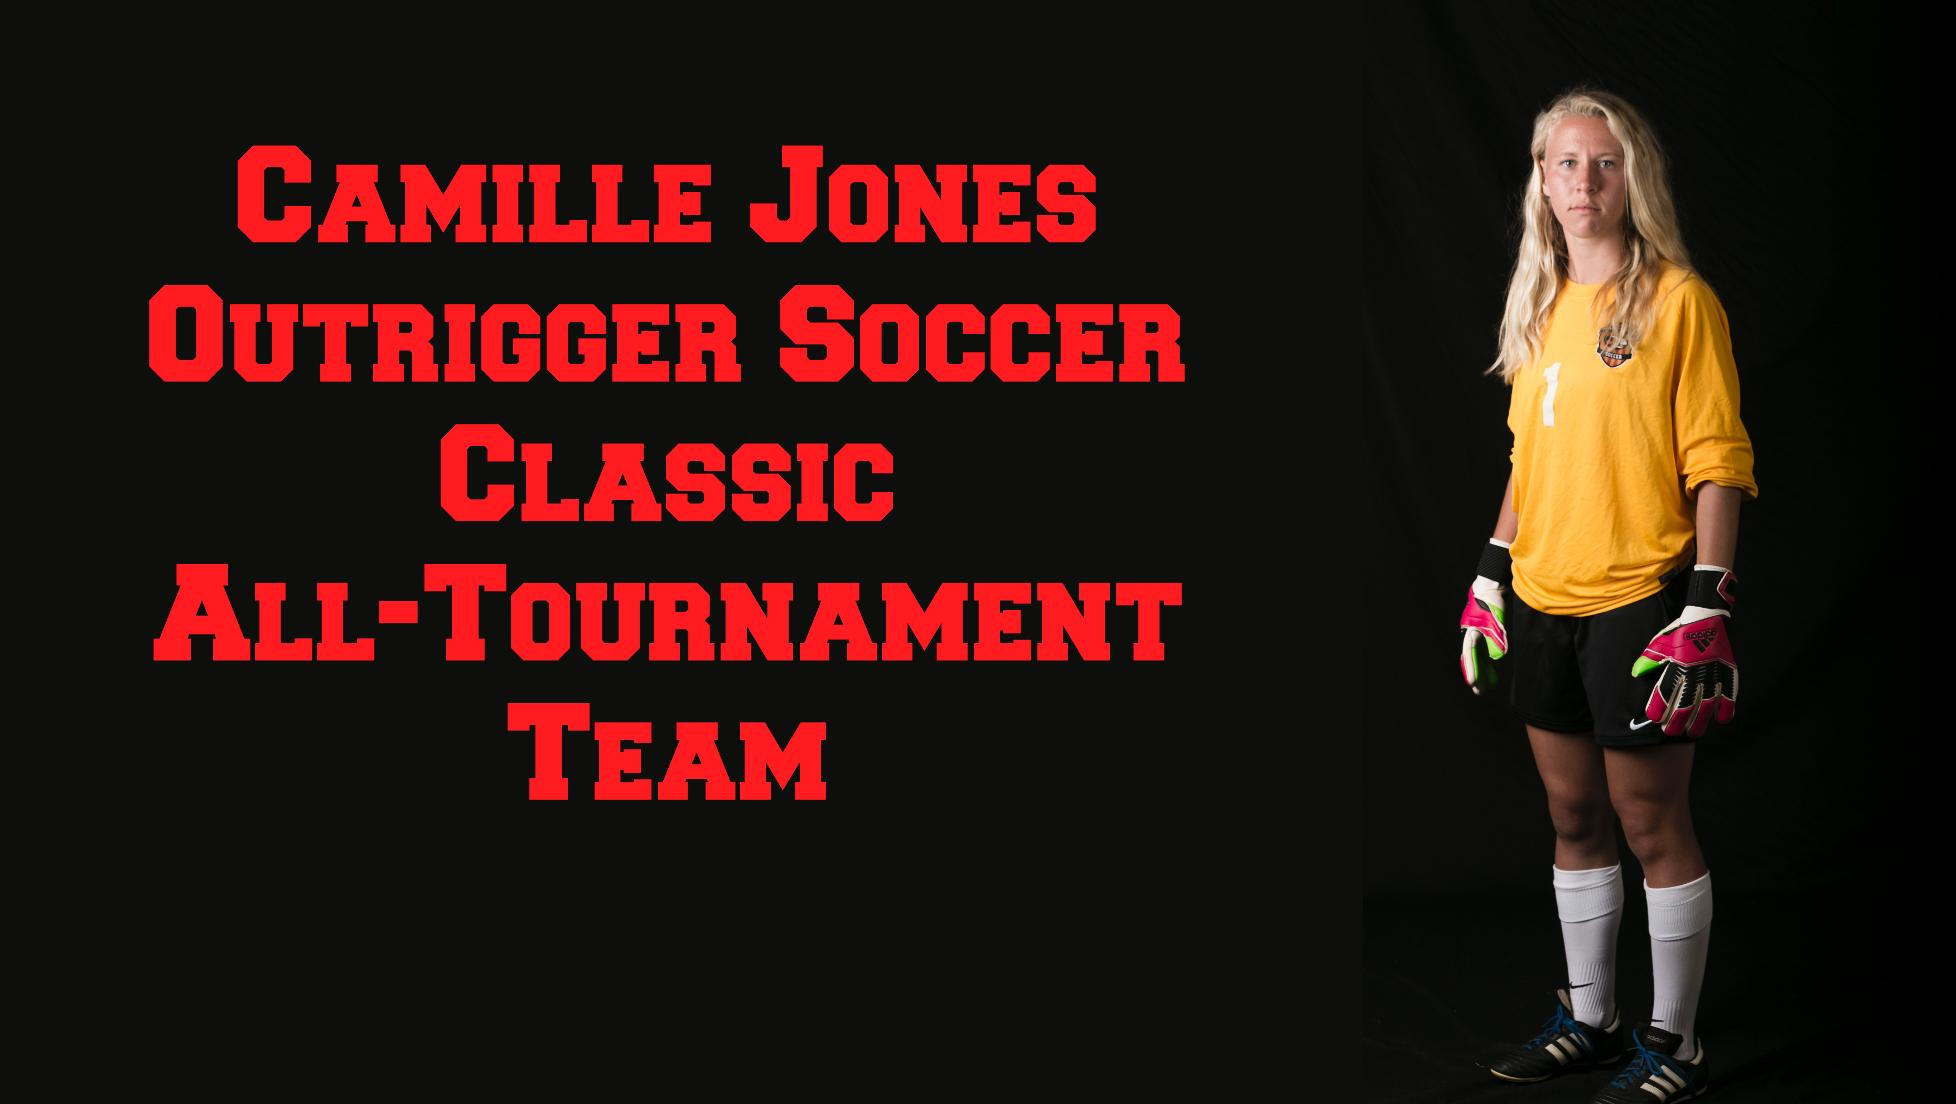 Camille Jones named to all-tournament team